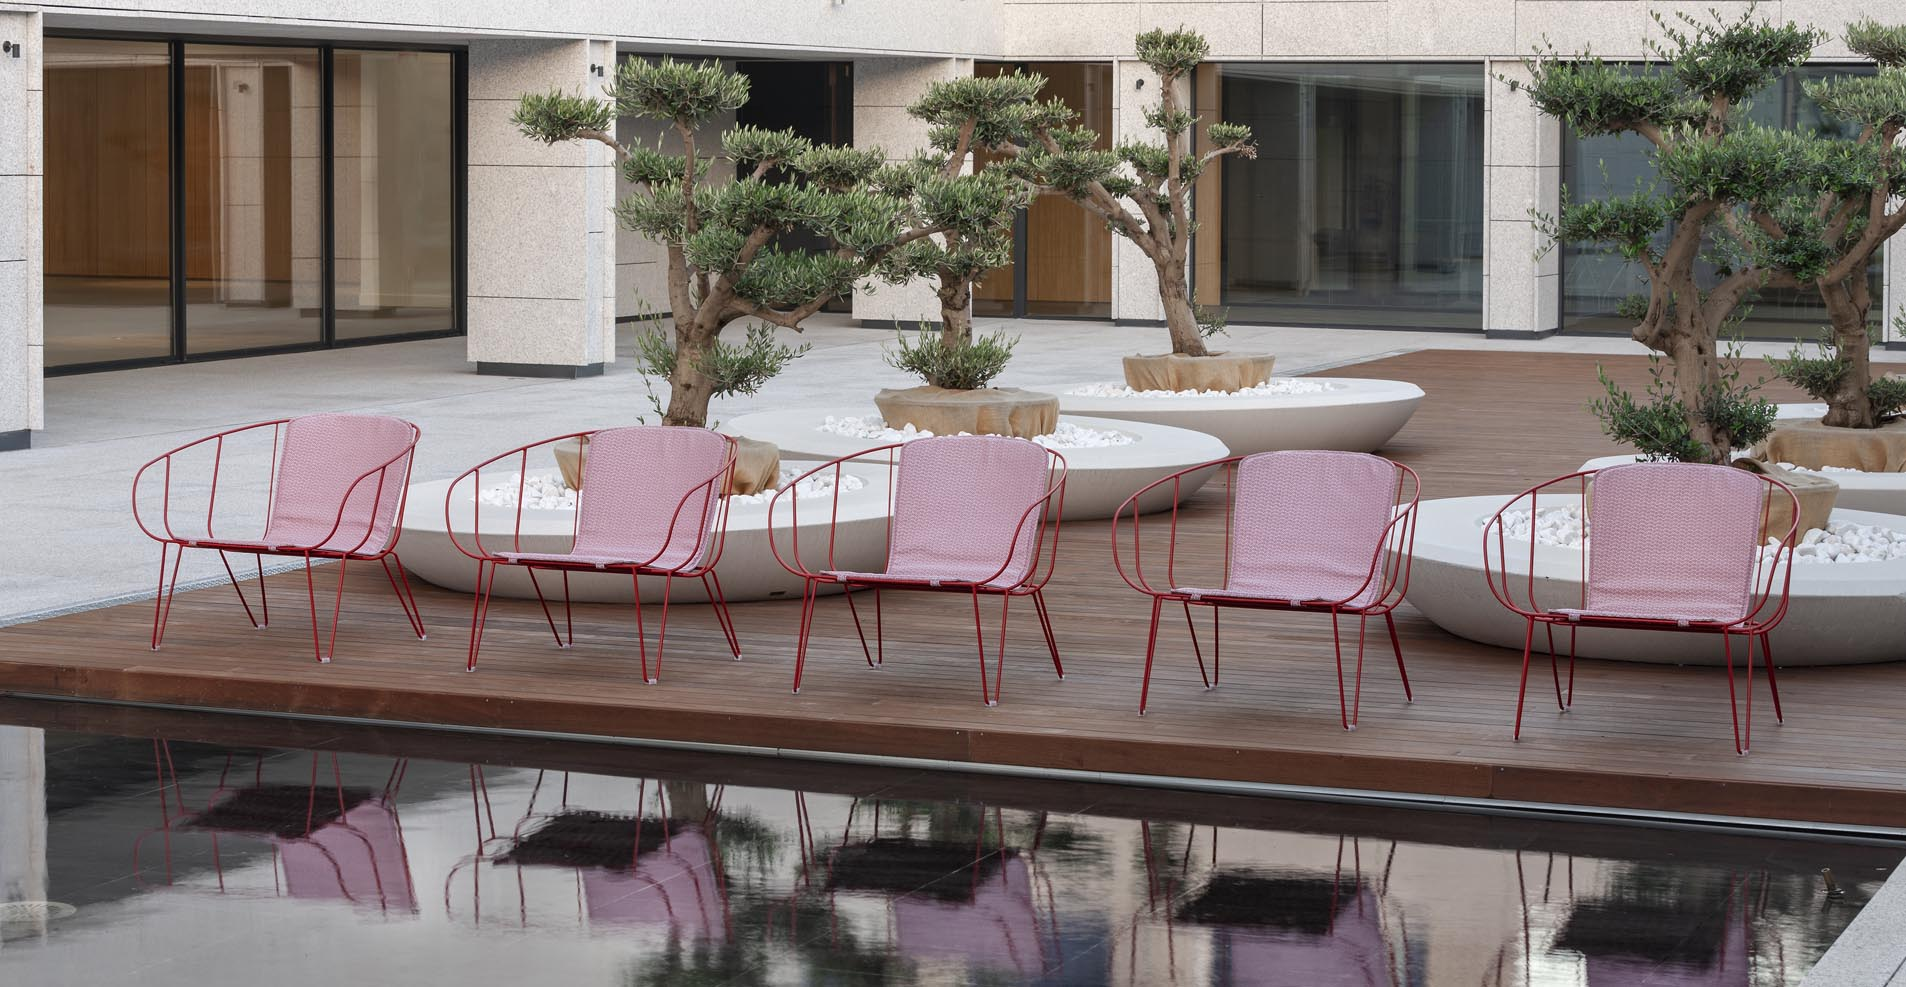 Olivo Lounge for Isimar is a stacking outdoor lounge chair